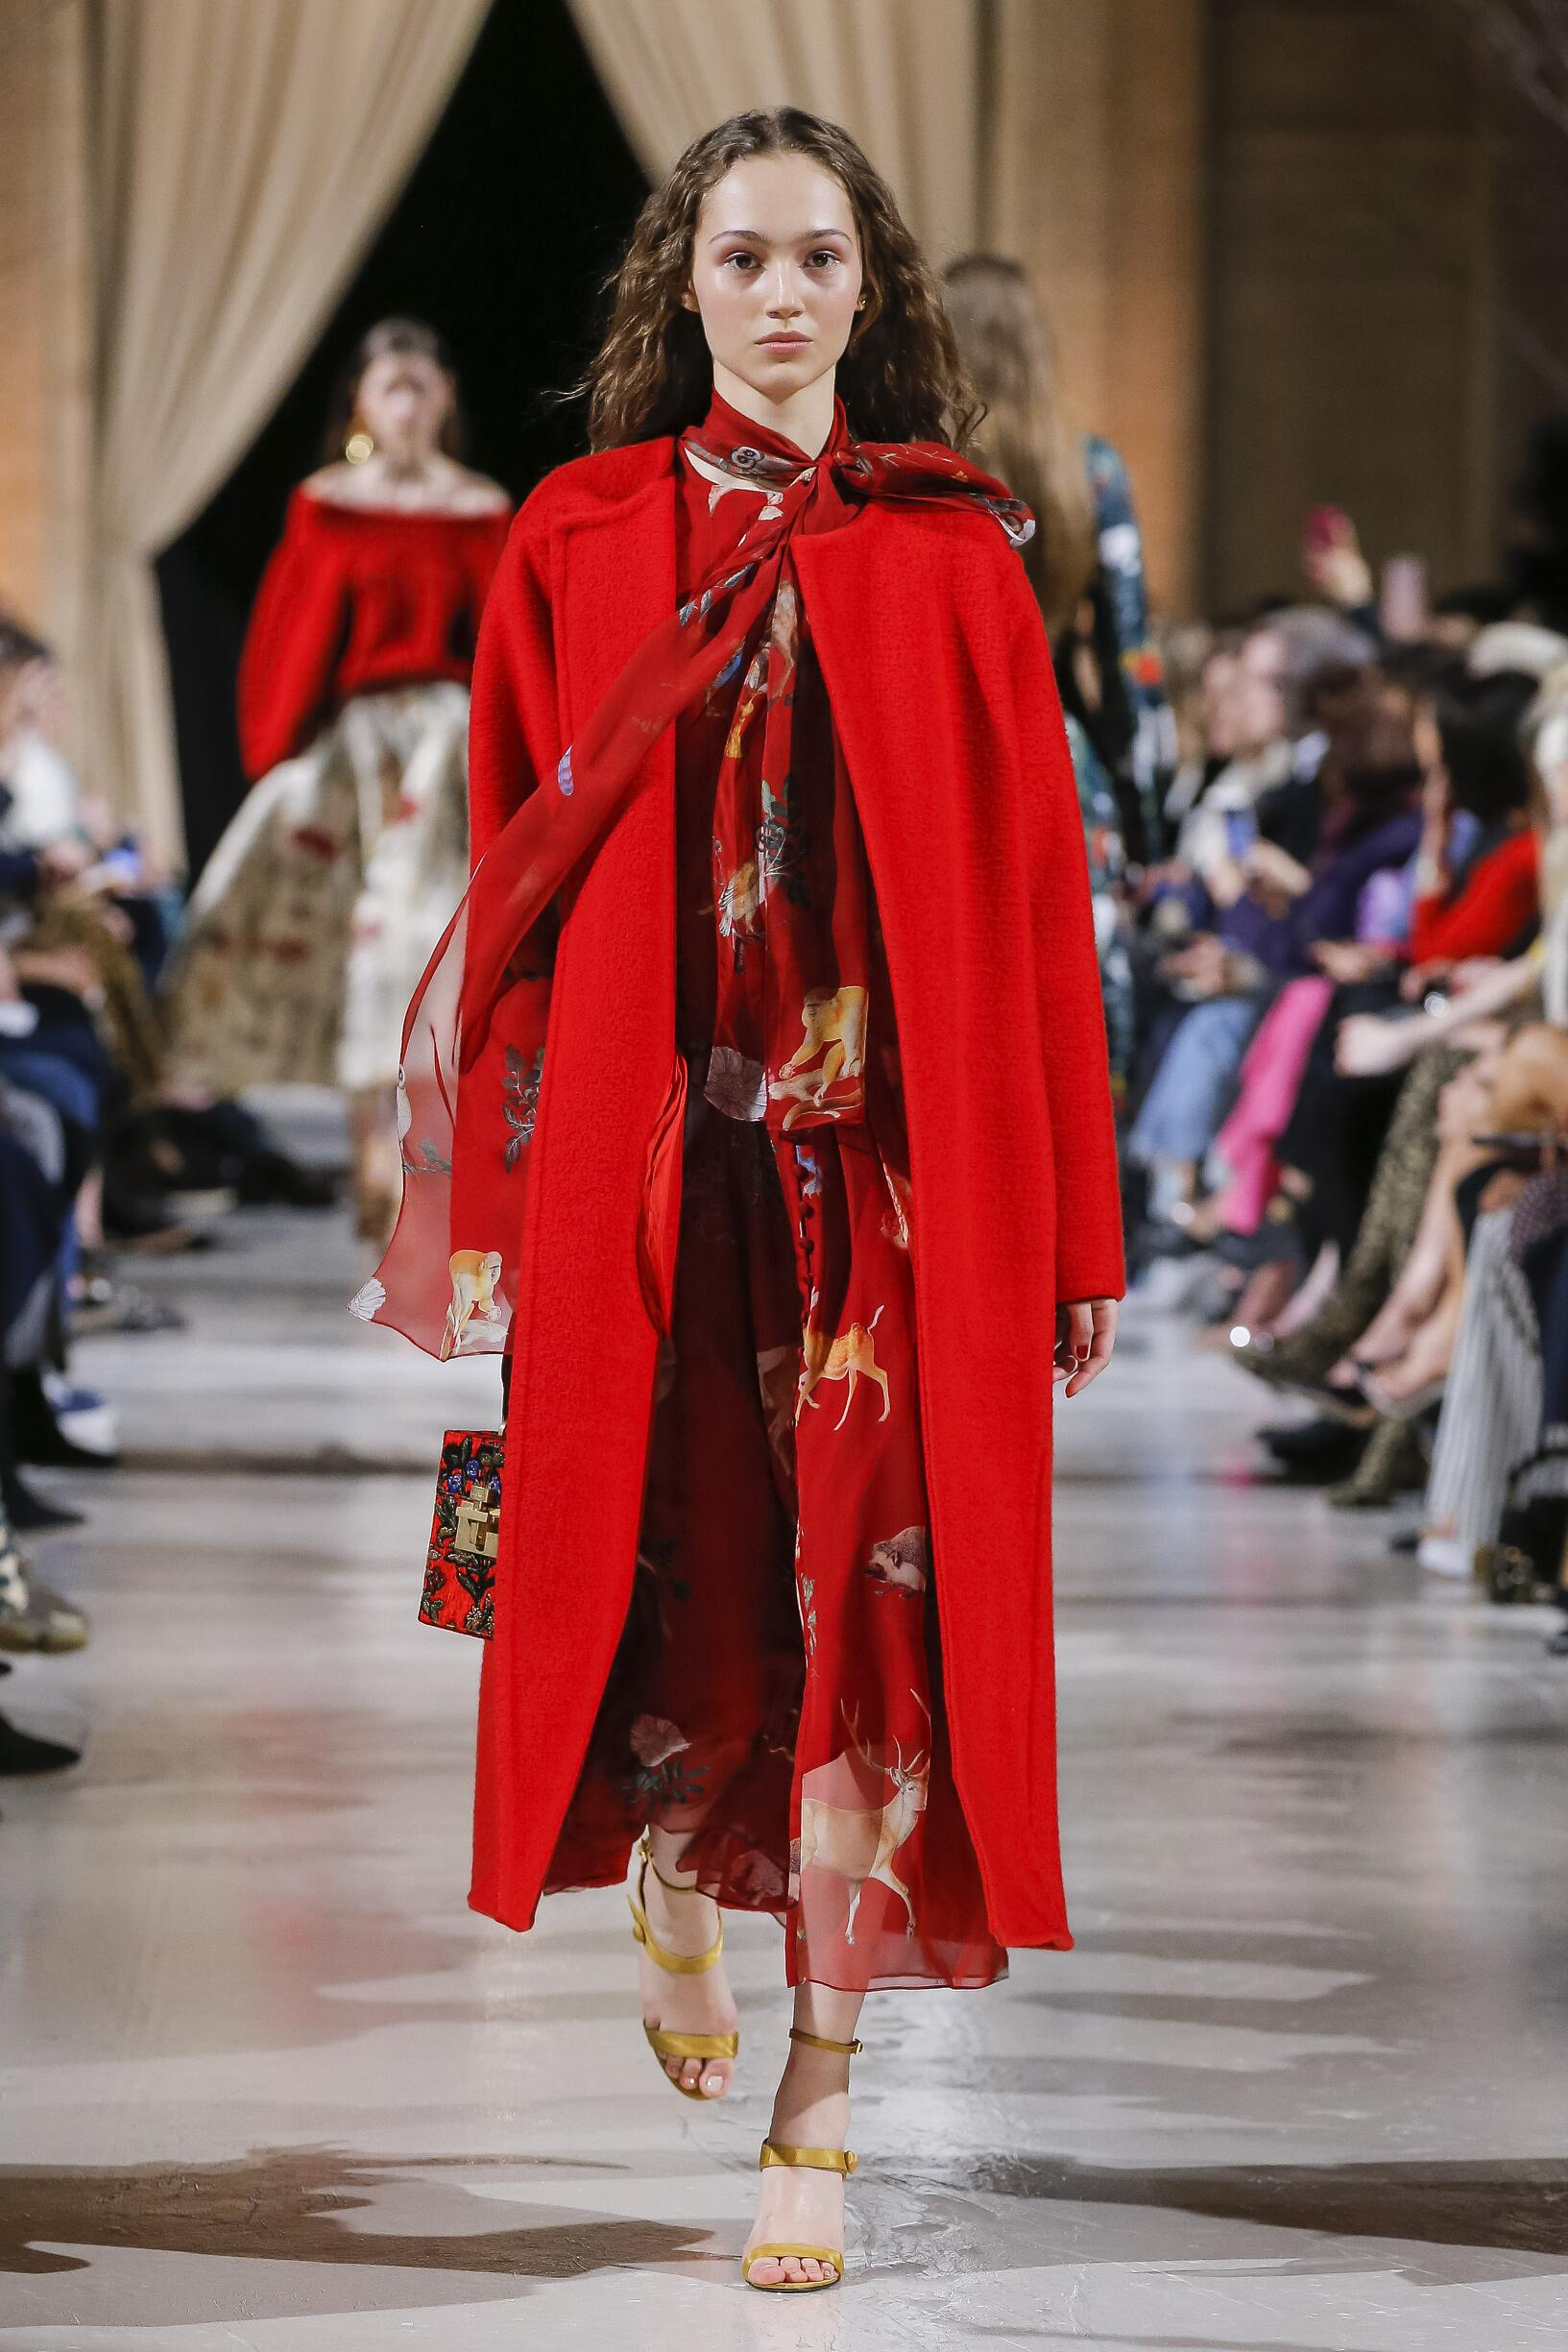 Oscar de la Renta Fall Winter 2018